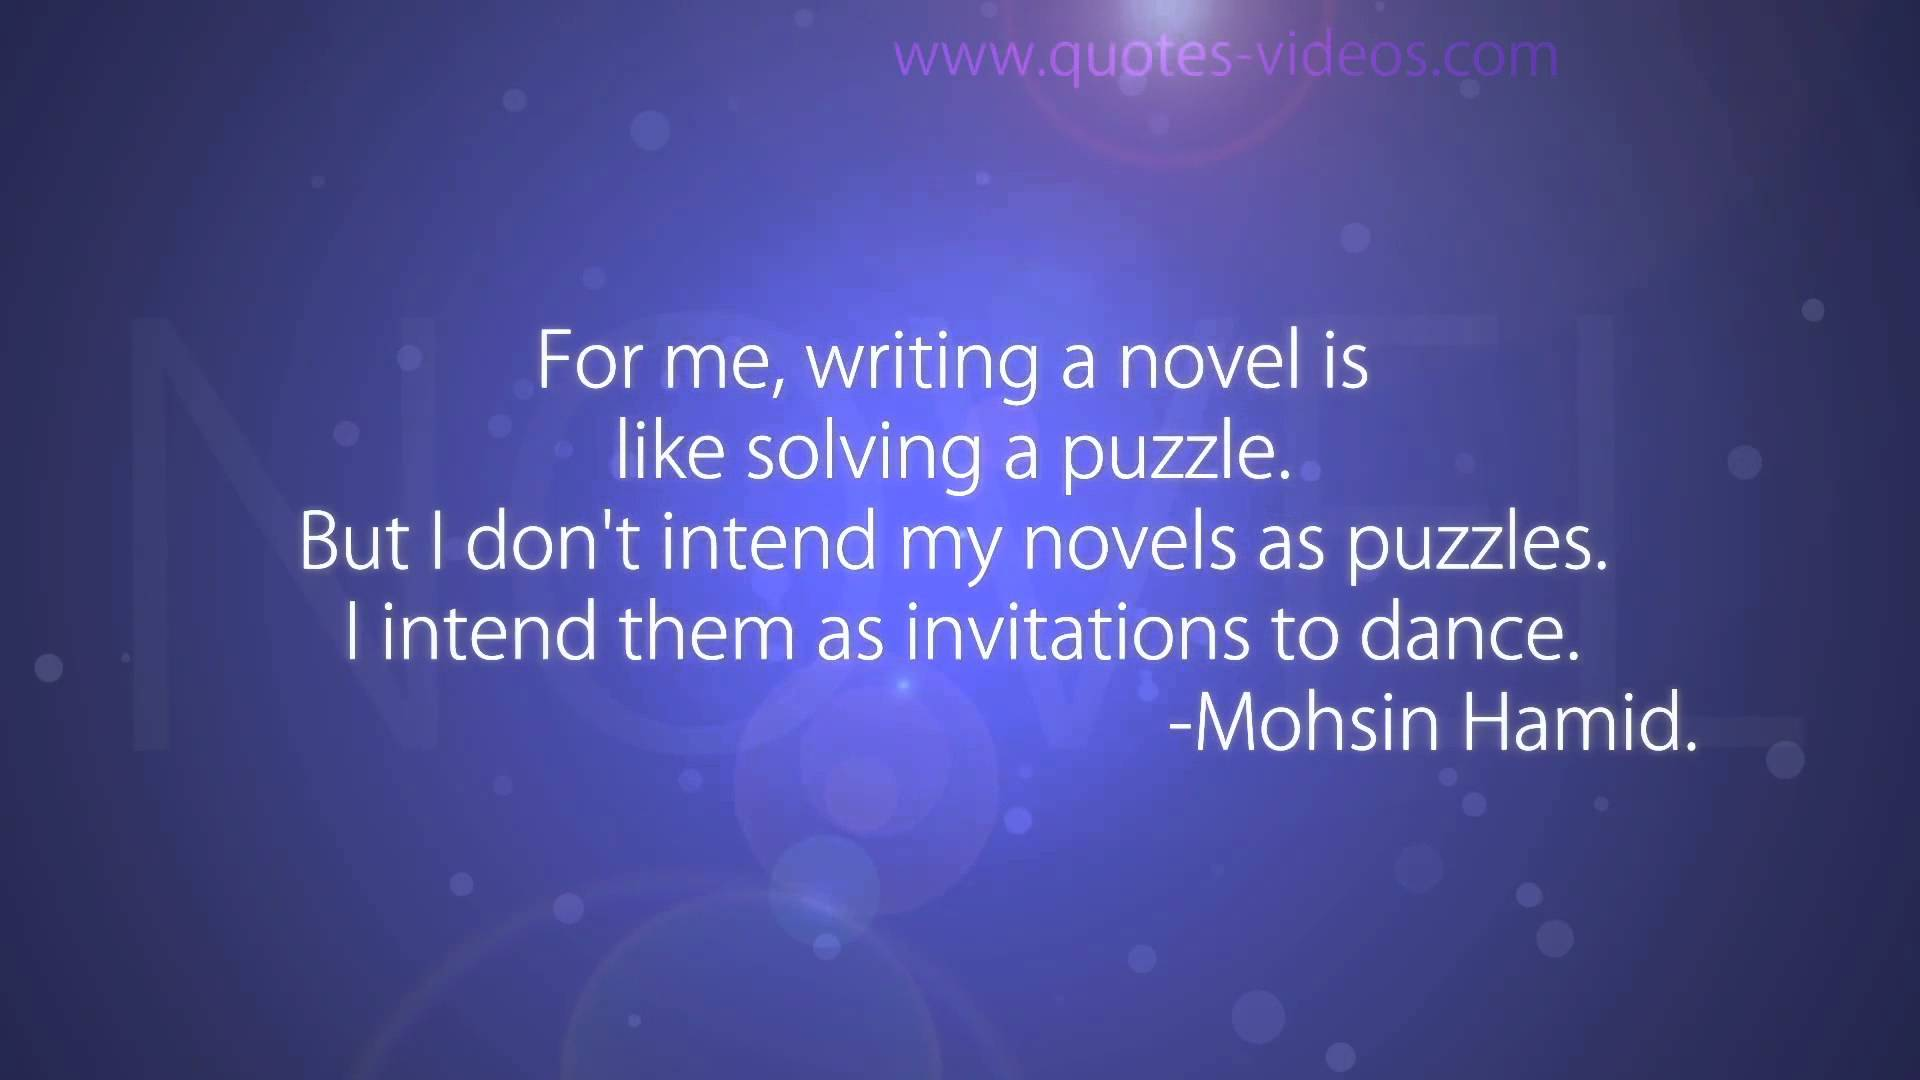 famous writing quotes Good literature requires witty writings and for that you need to have a way with words read this article for some literature quotes and famous writing quotations and sayings.